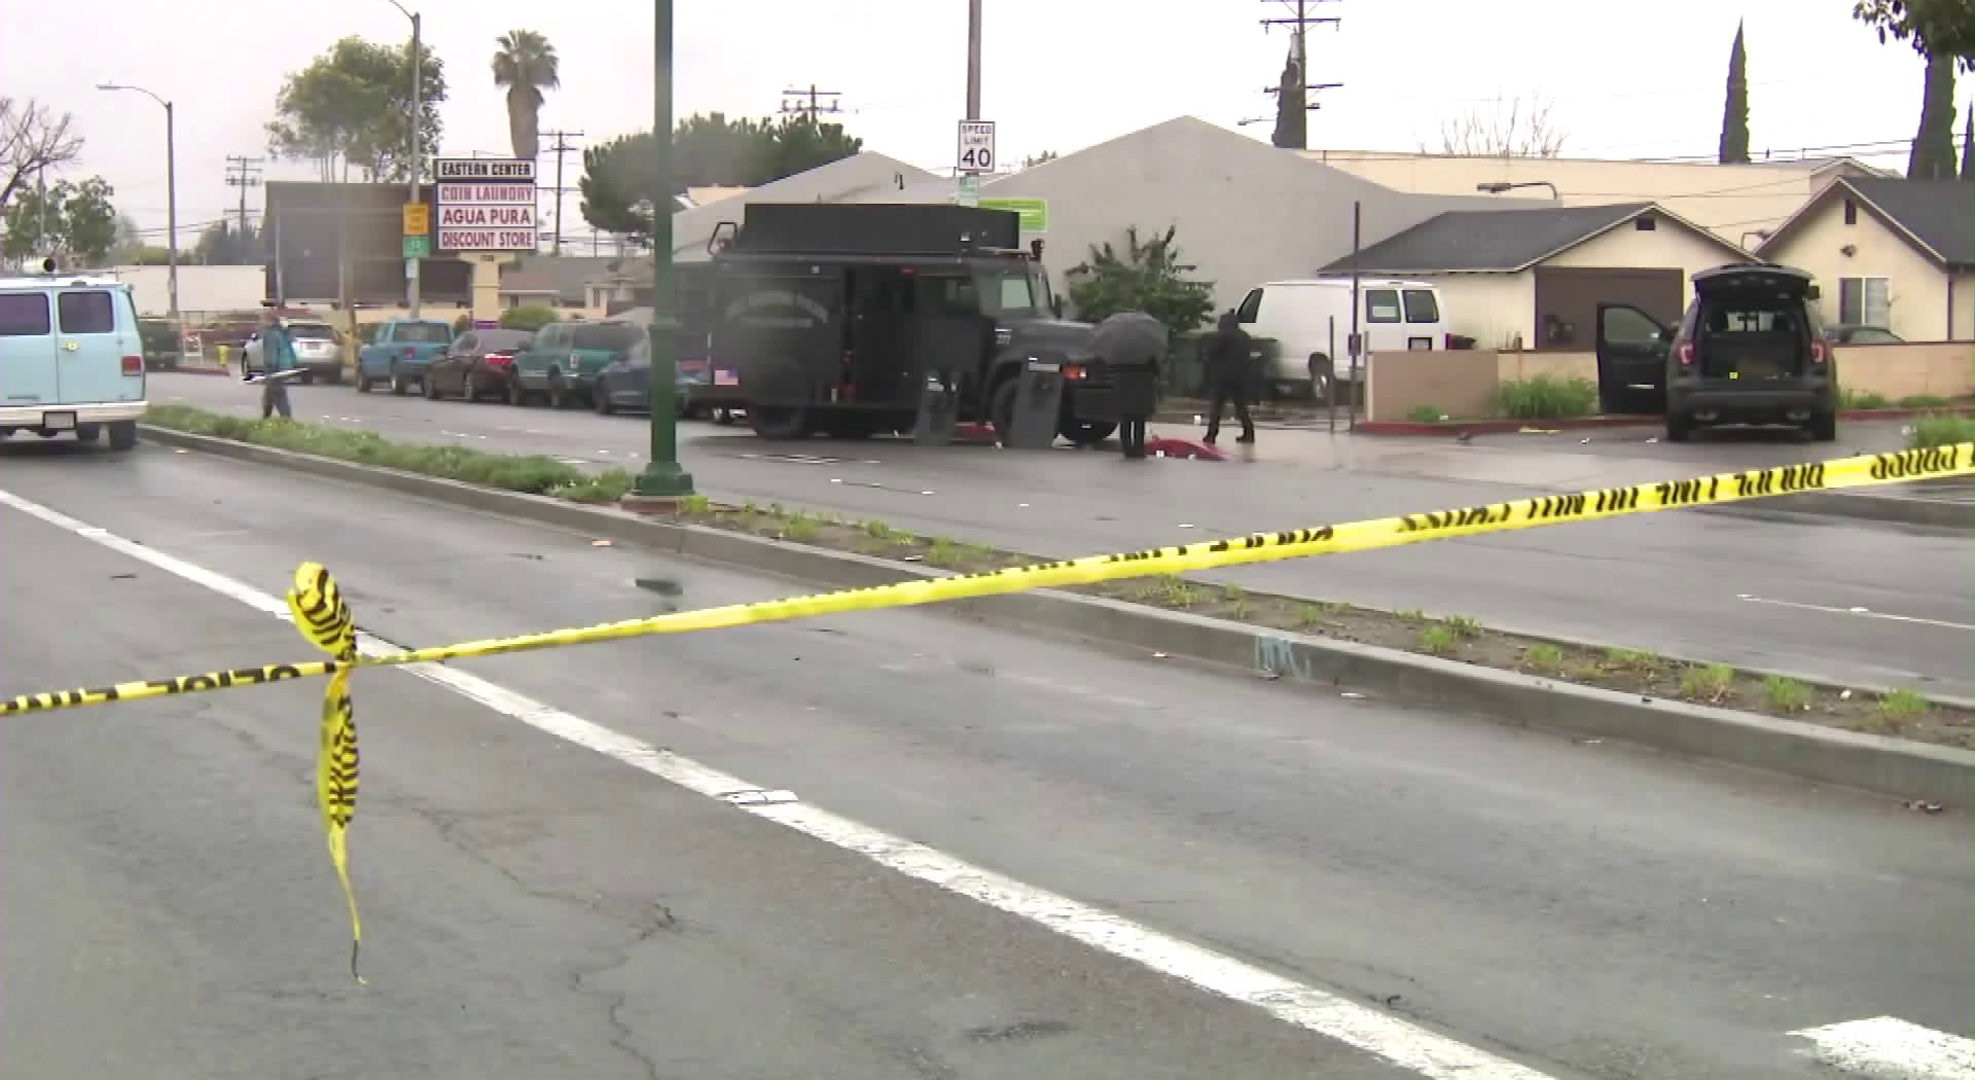 Authorities respond to a fatal police shooting on March 10, 2020. (KTLA)